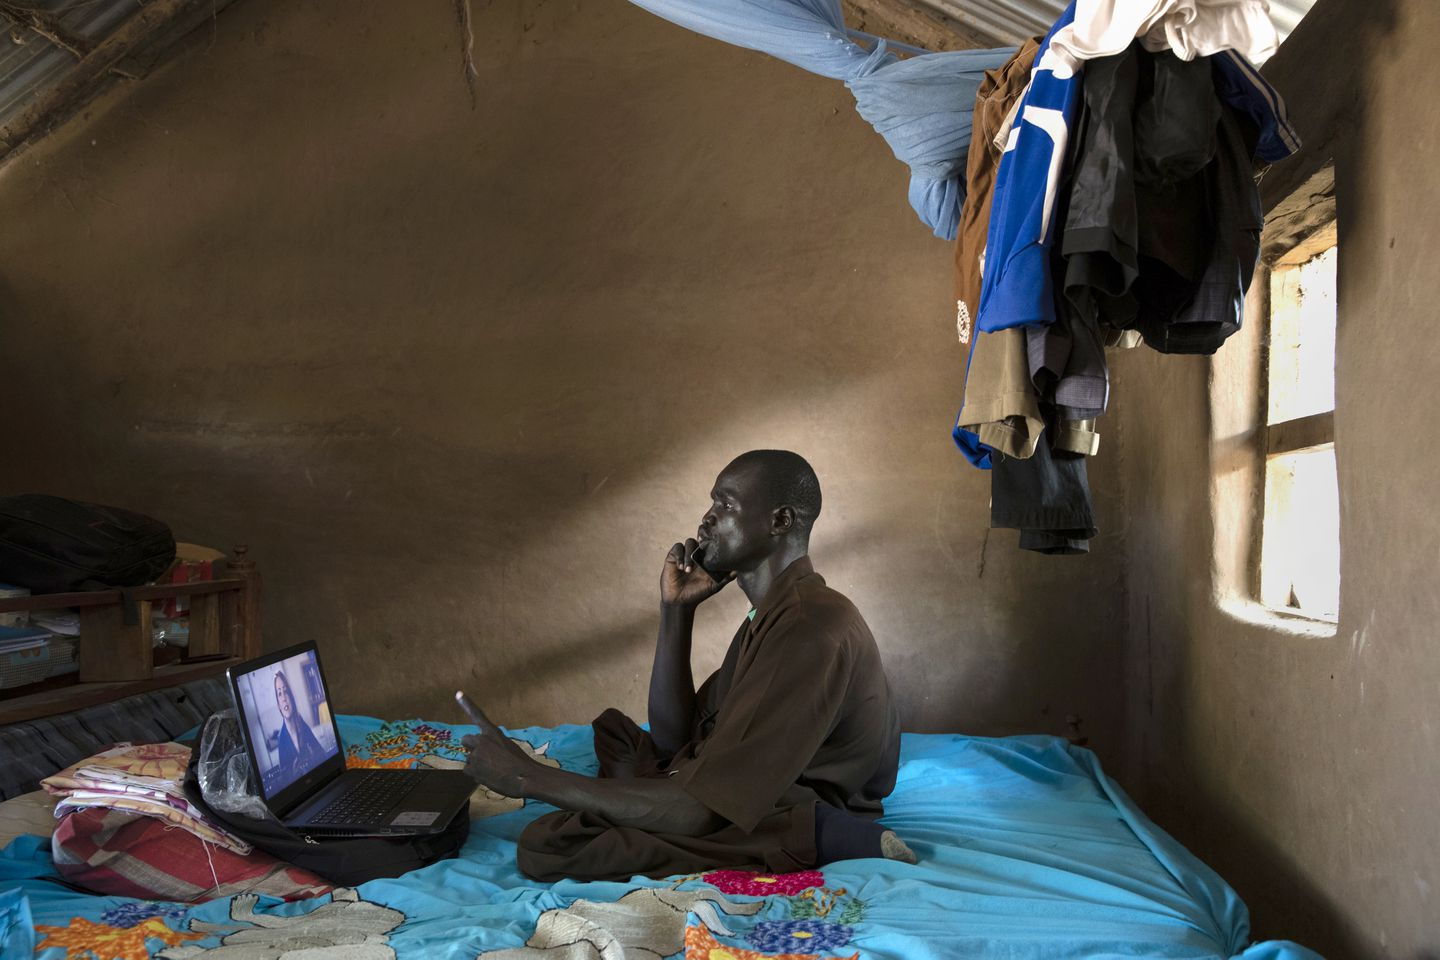 Bol Daniel Maduk, did his class work in the compound where he lives in the UNHCR refugee camp in Kakuma. Maduk hopes that the degree he is working on through Southern New Hampshire University's online program will enable him to start his own school for children with special needs.